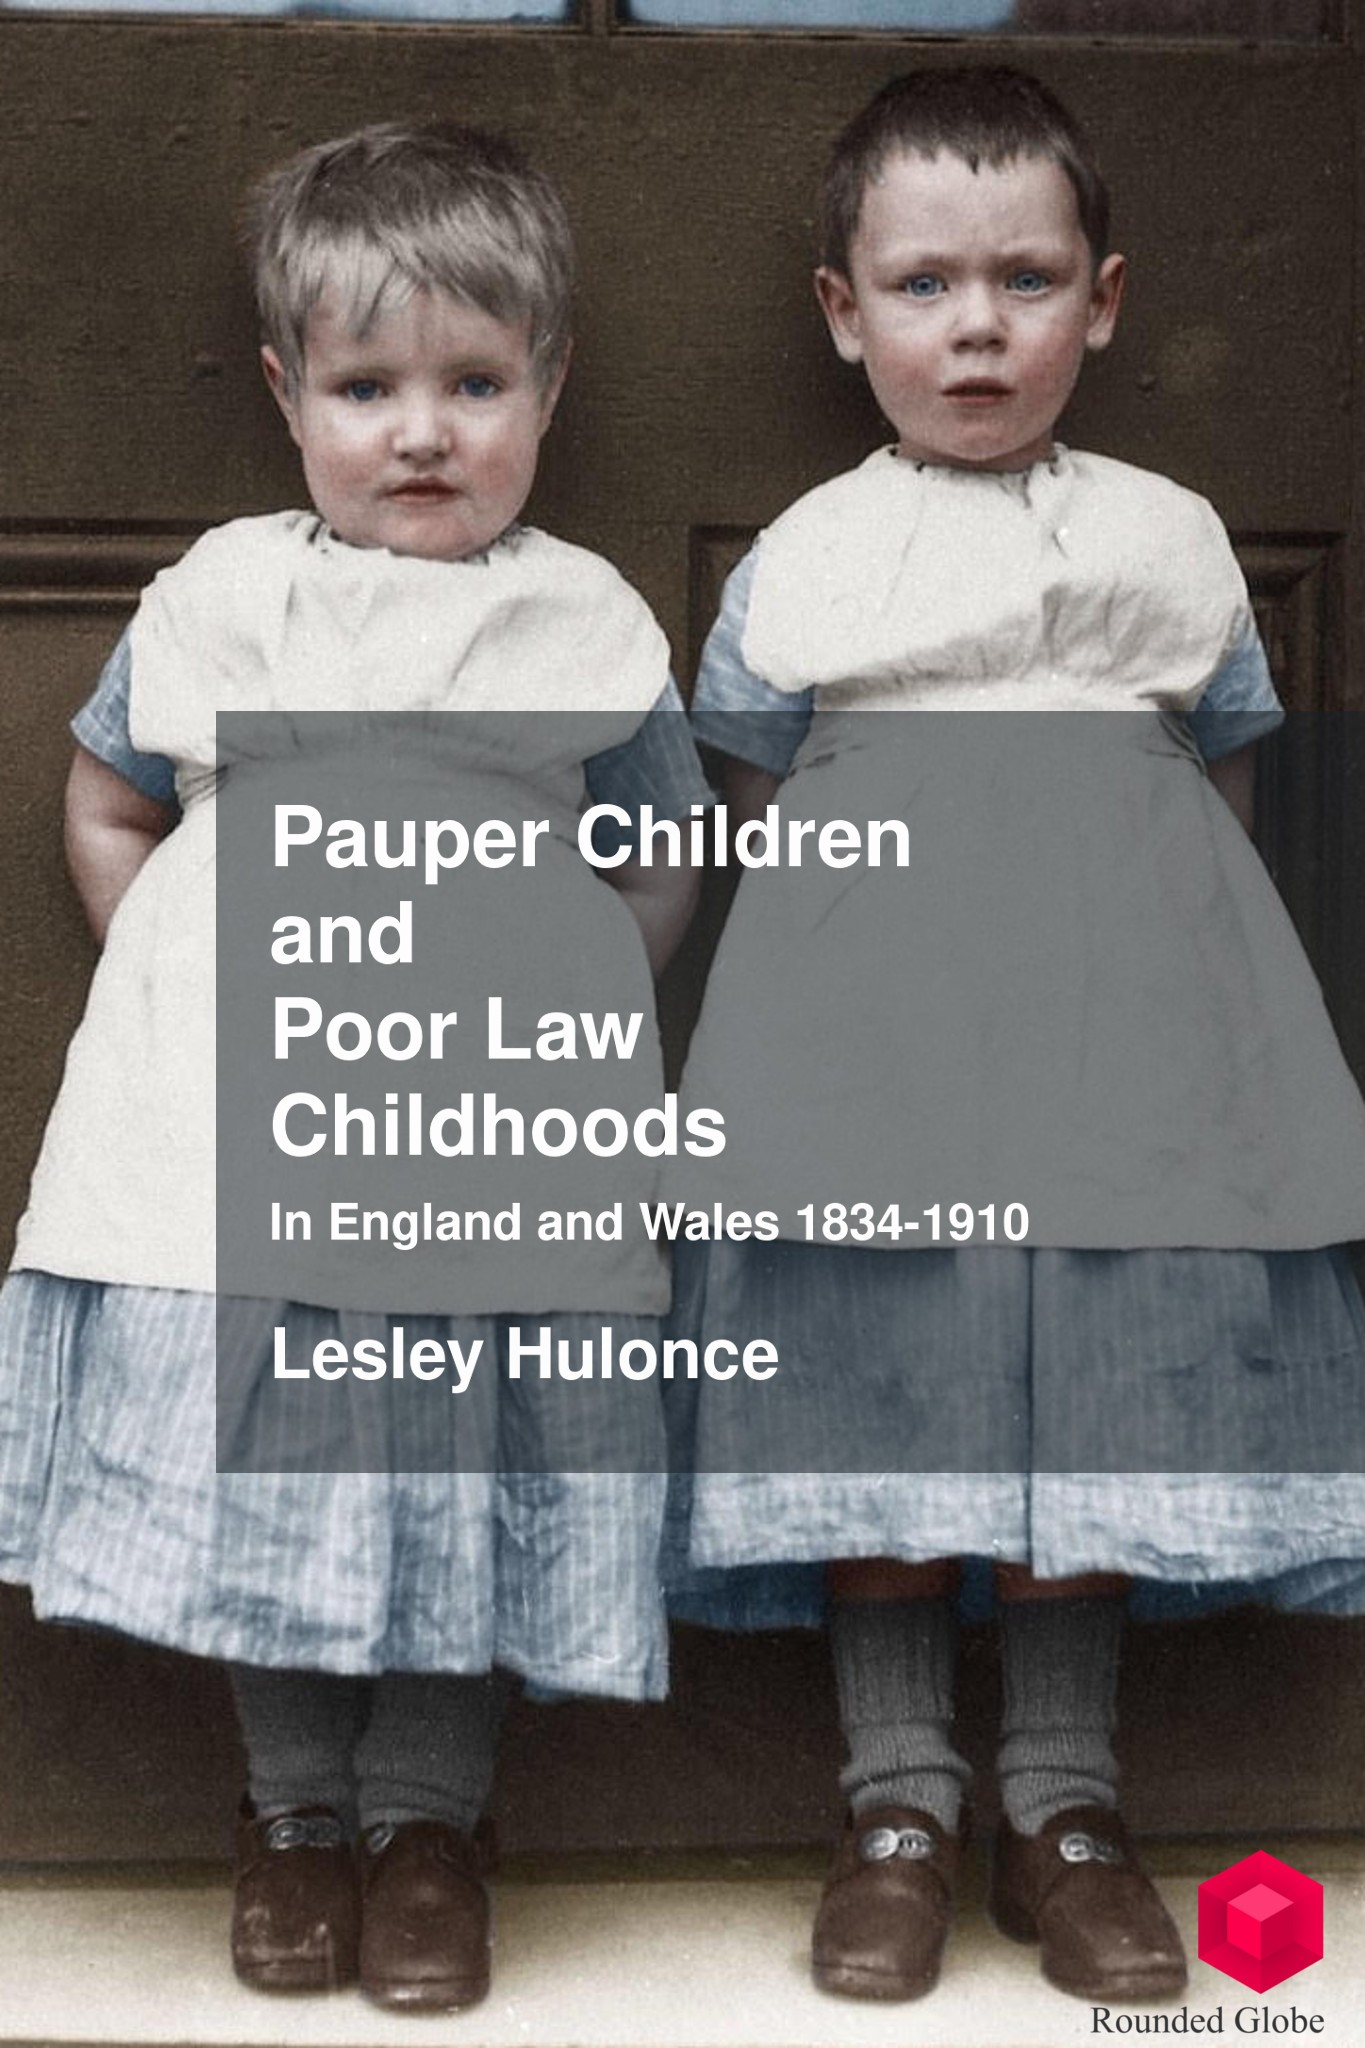 Rounded Globe — Pauper Children and Poor Law Childhoods in